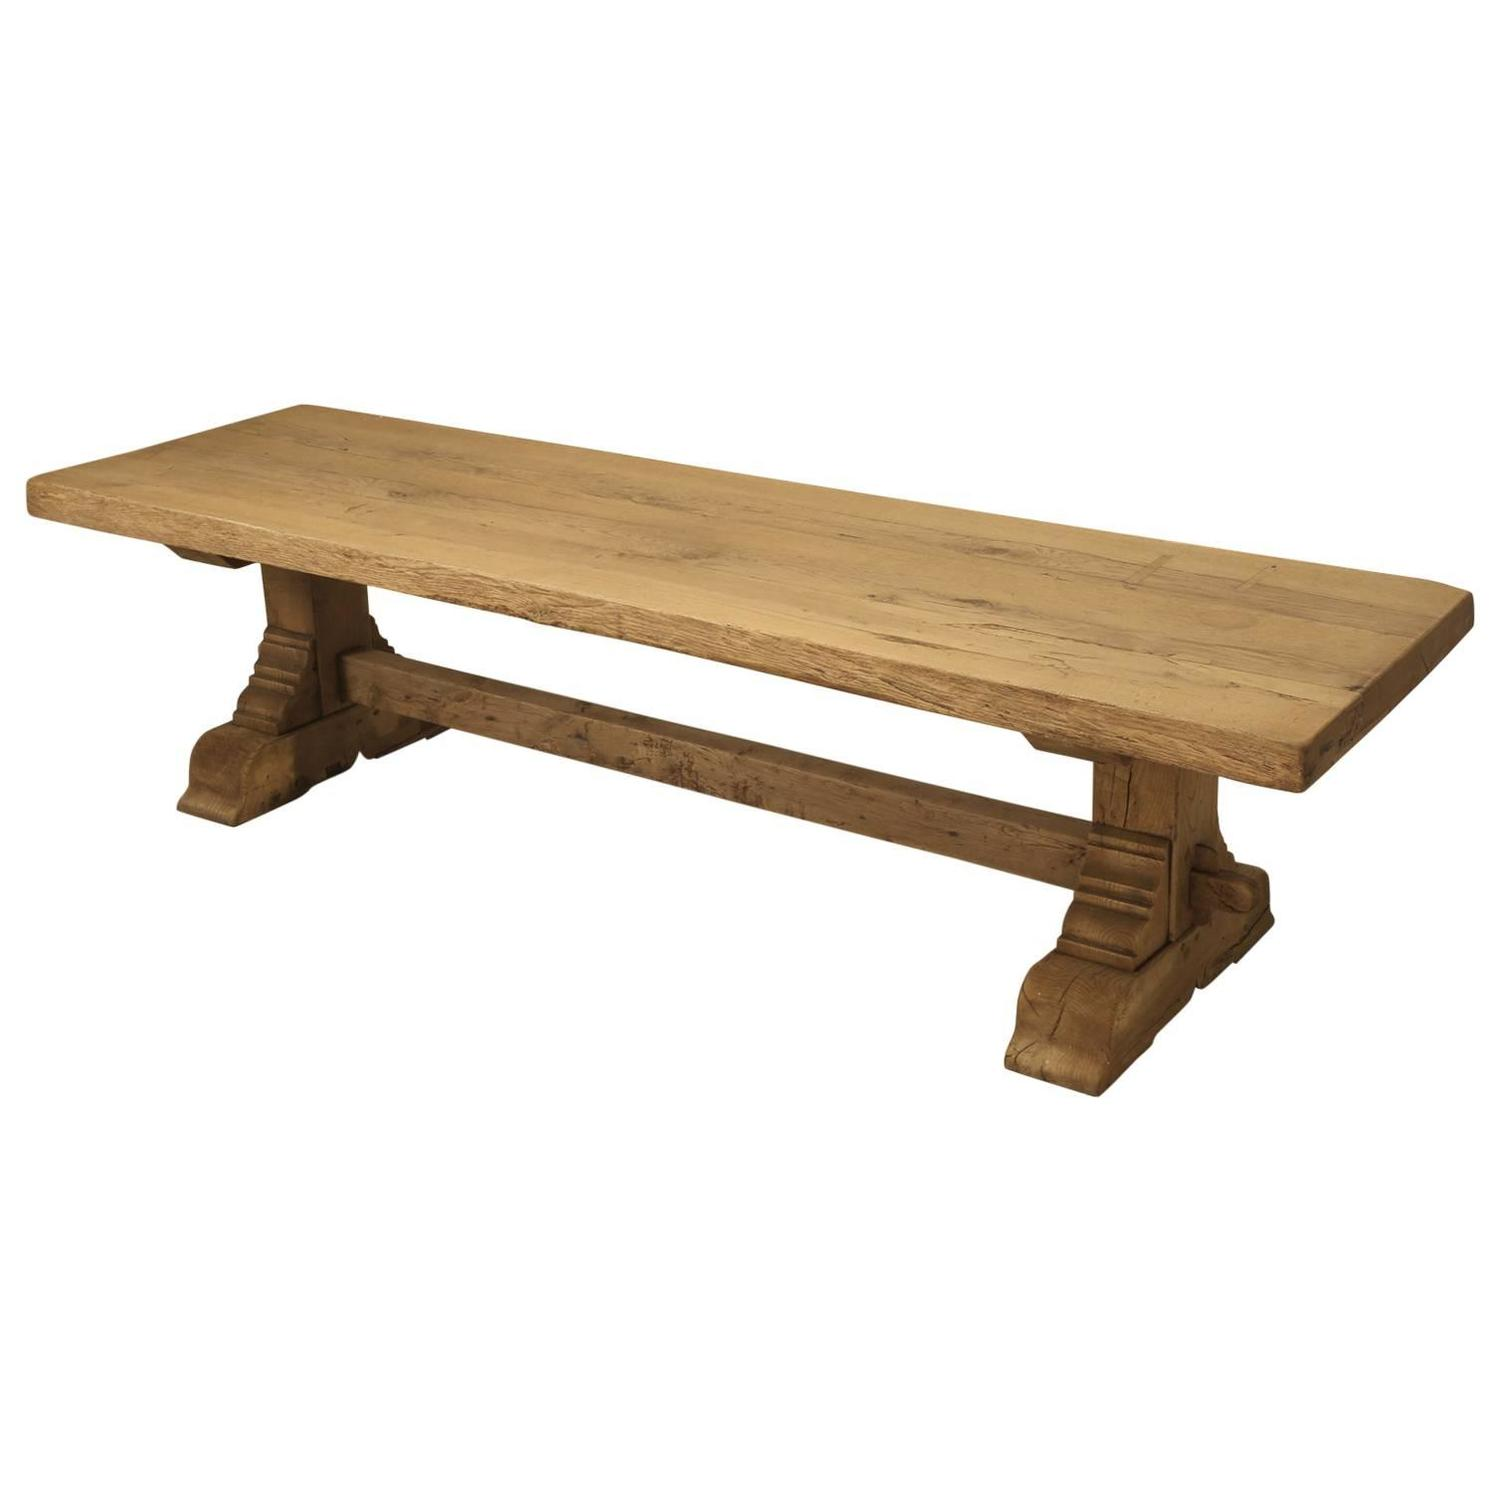 Farm Dining Table For Sale: Antique French Farm House Dining Table For Sale At 1stdibs